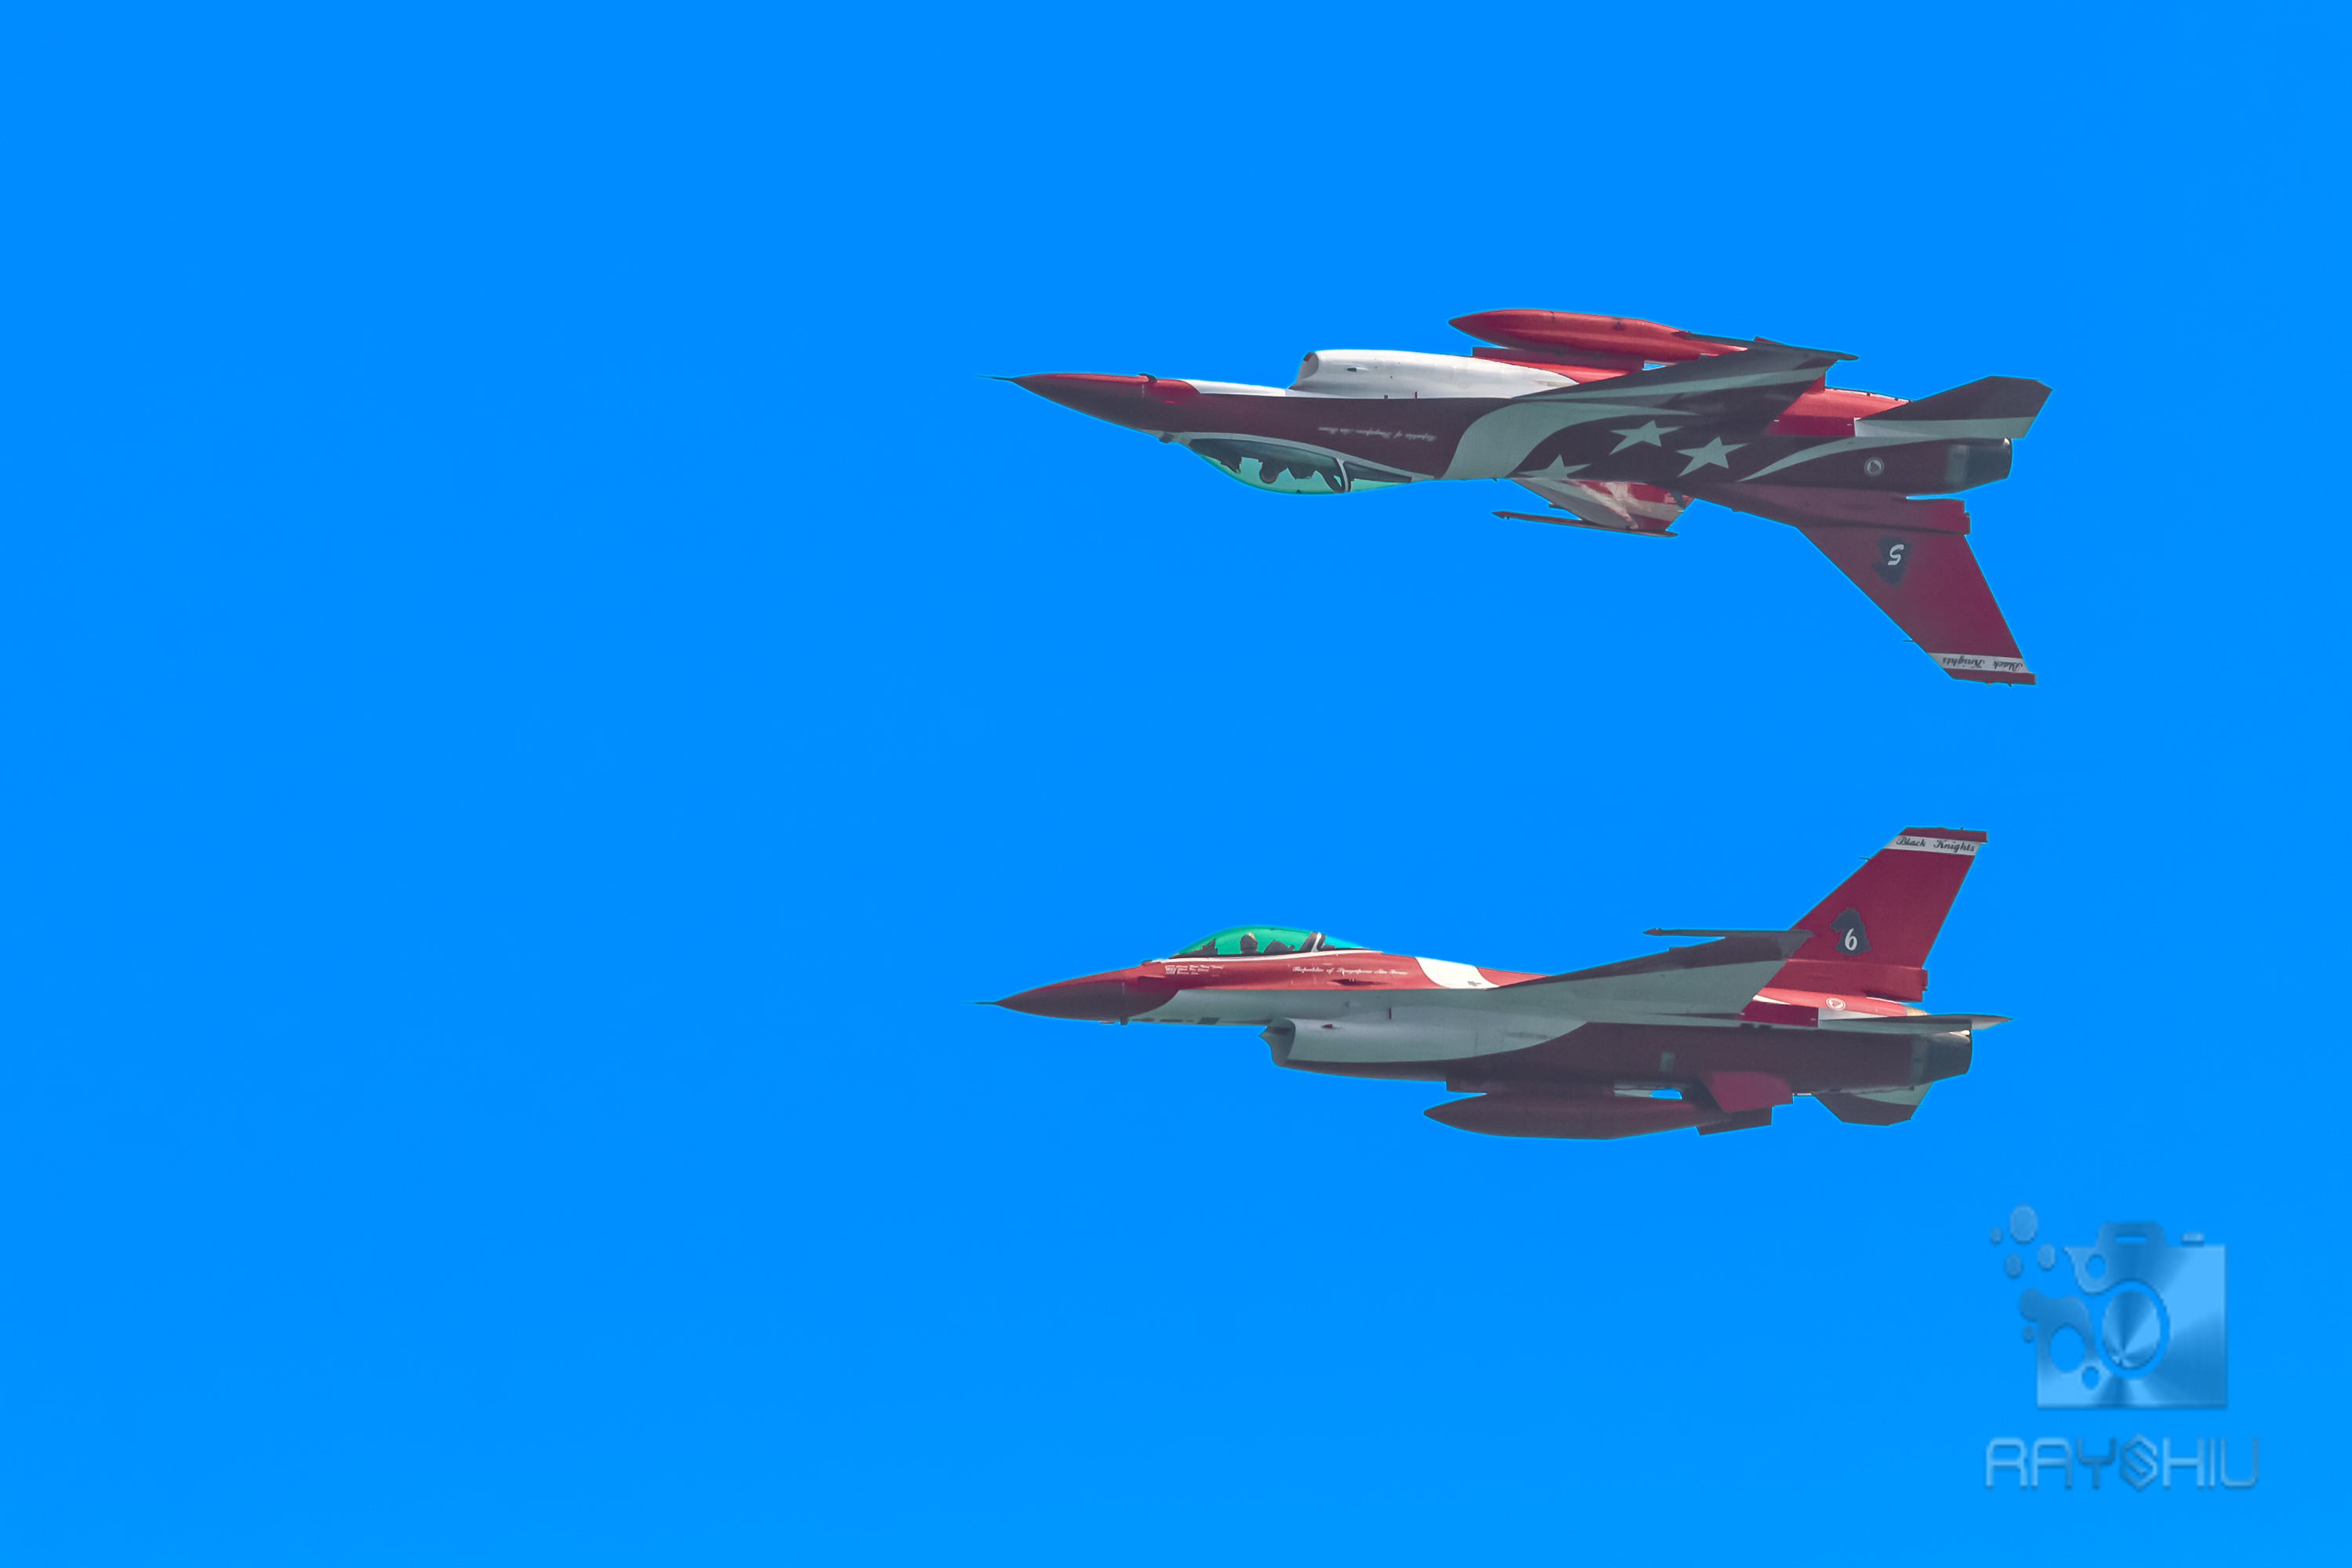 A pair of mirrored F-16's